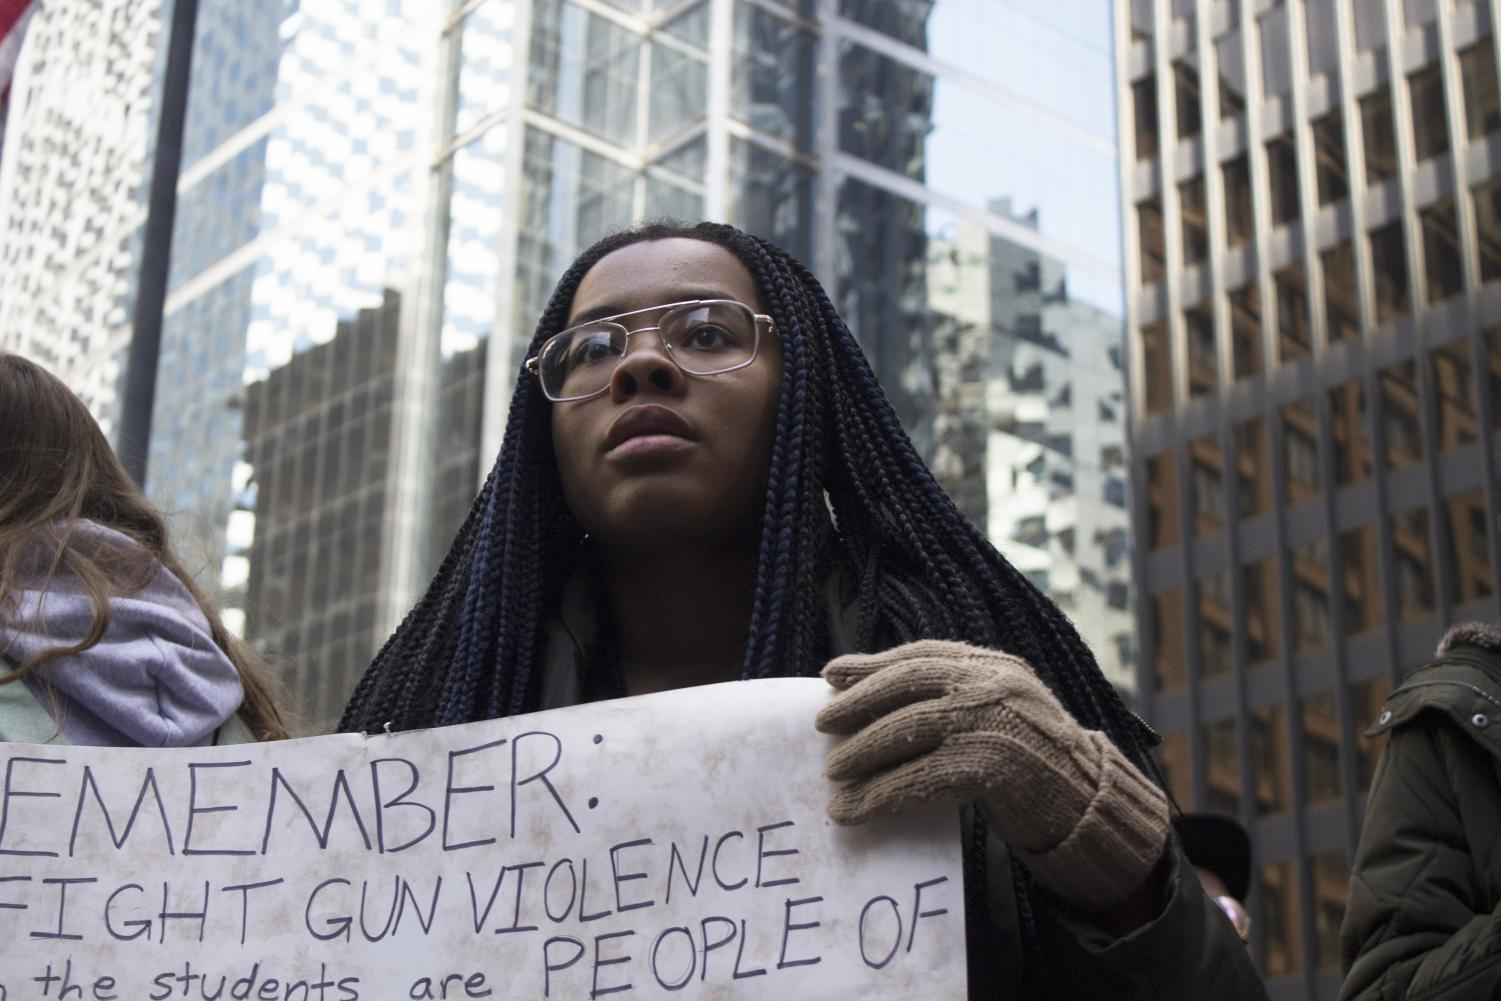 A Chicago student rallies against gun violence on behalf of people of color at the April 20 march.